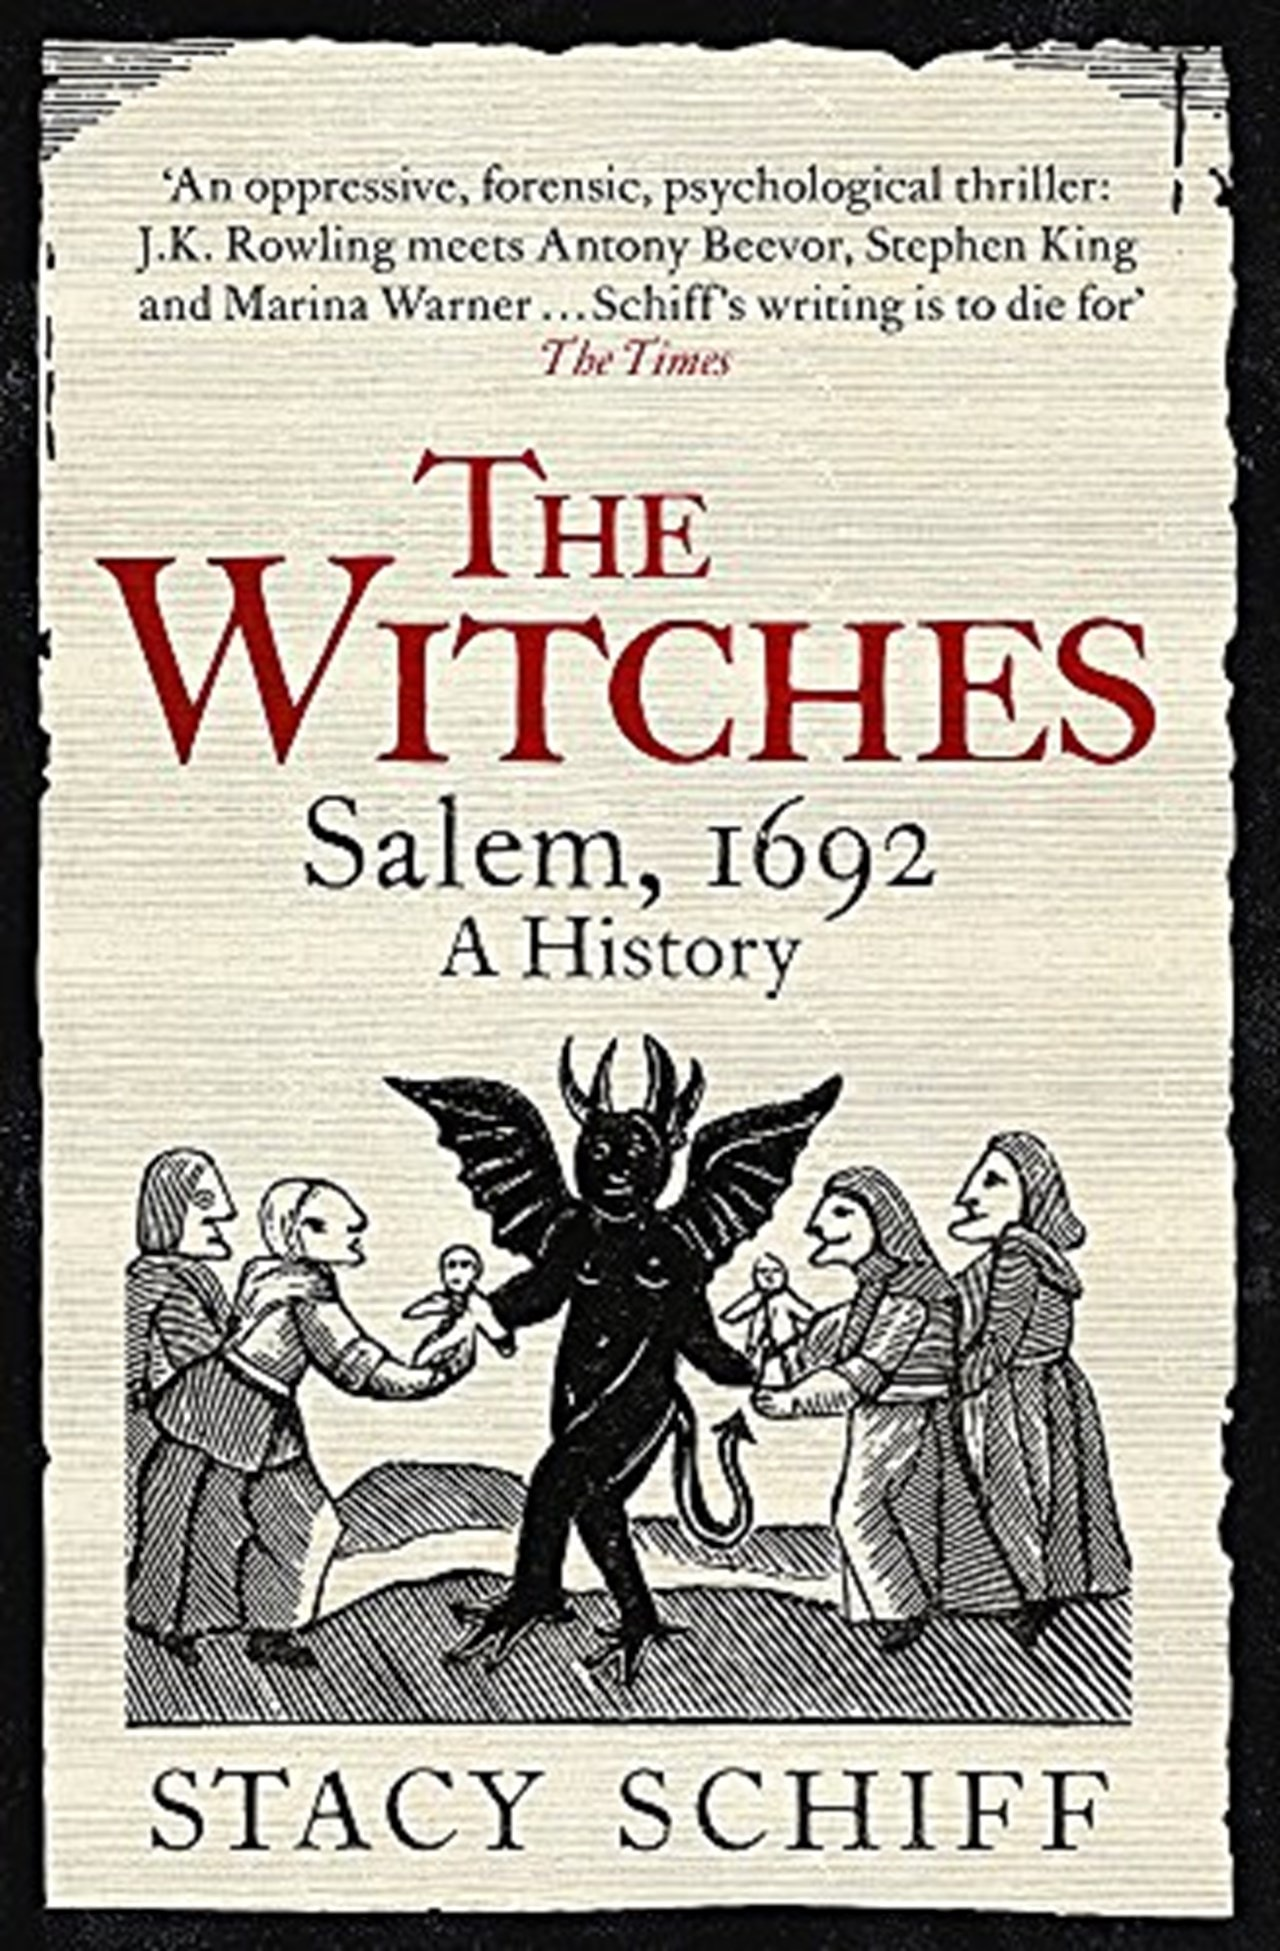 The Witches: Salem, 1692 A History - 1